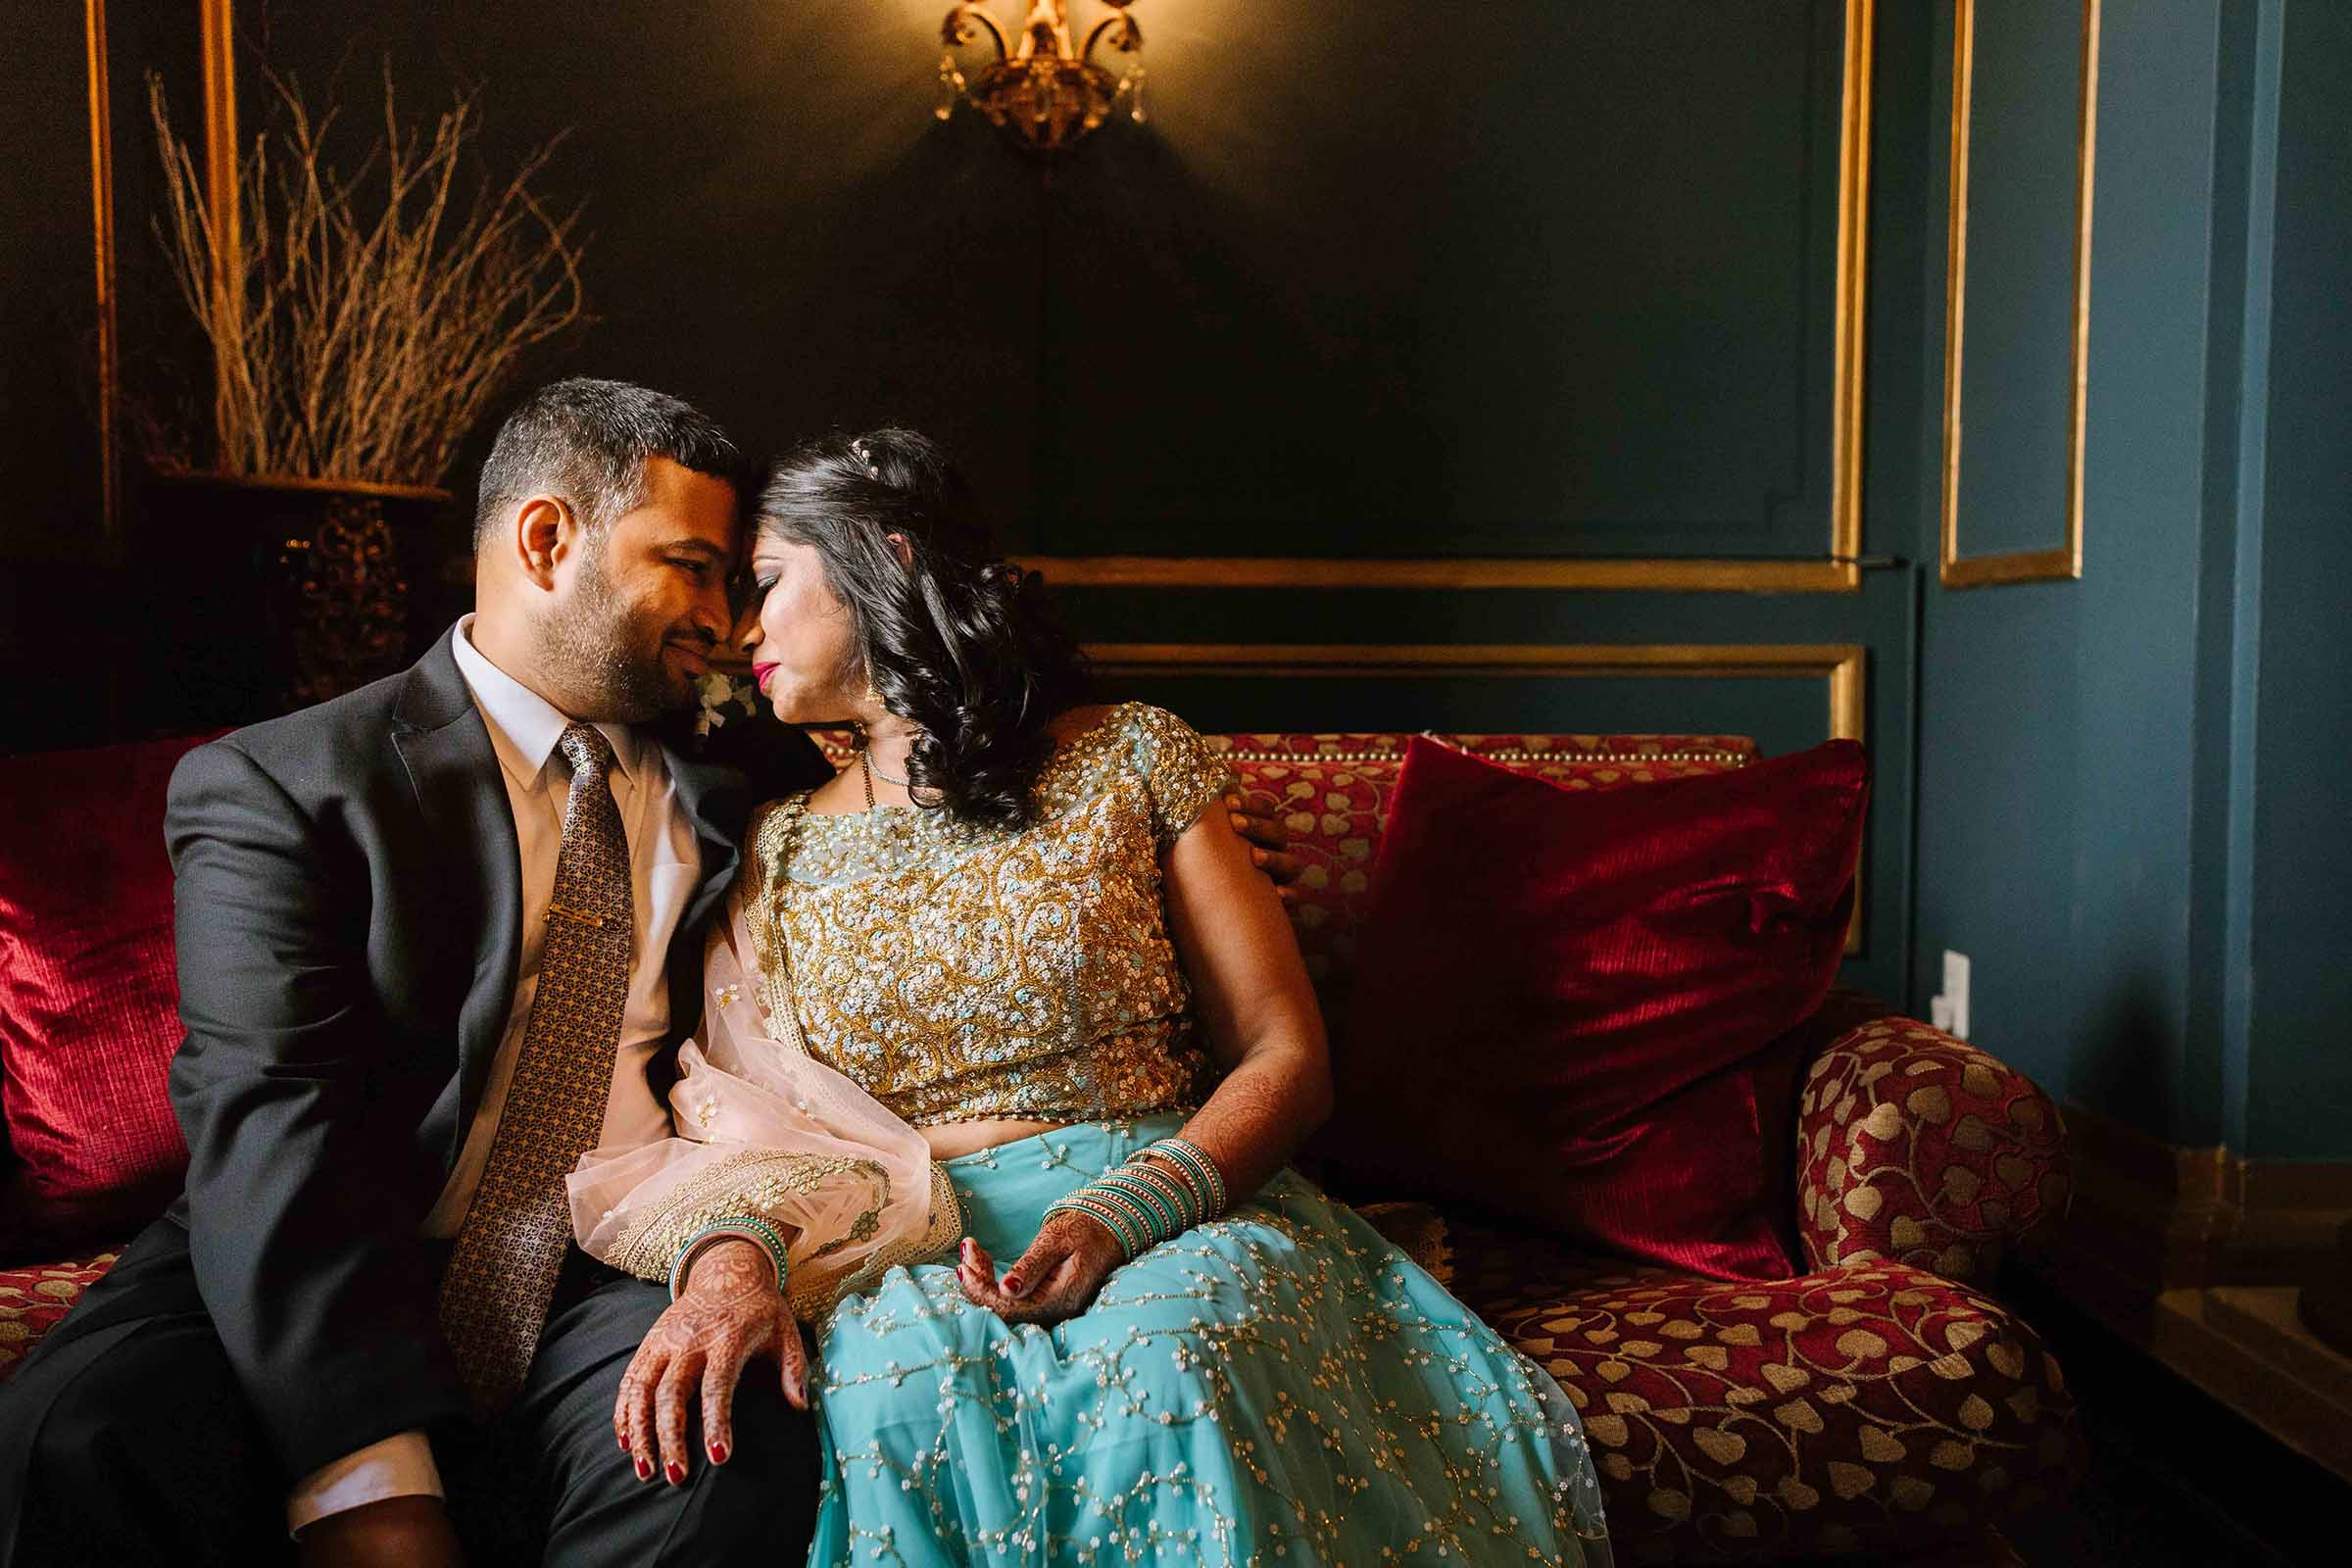 baltimore_wedding_photographer_urban_row_photography_belvedere_hotel_mount_vernon 15.jpg